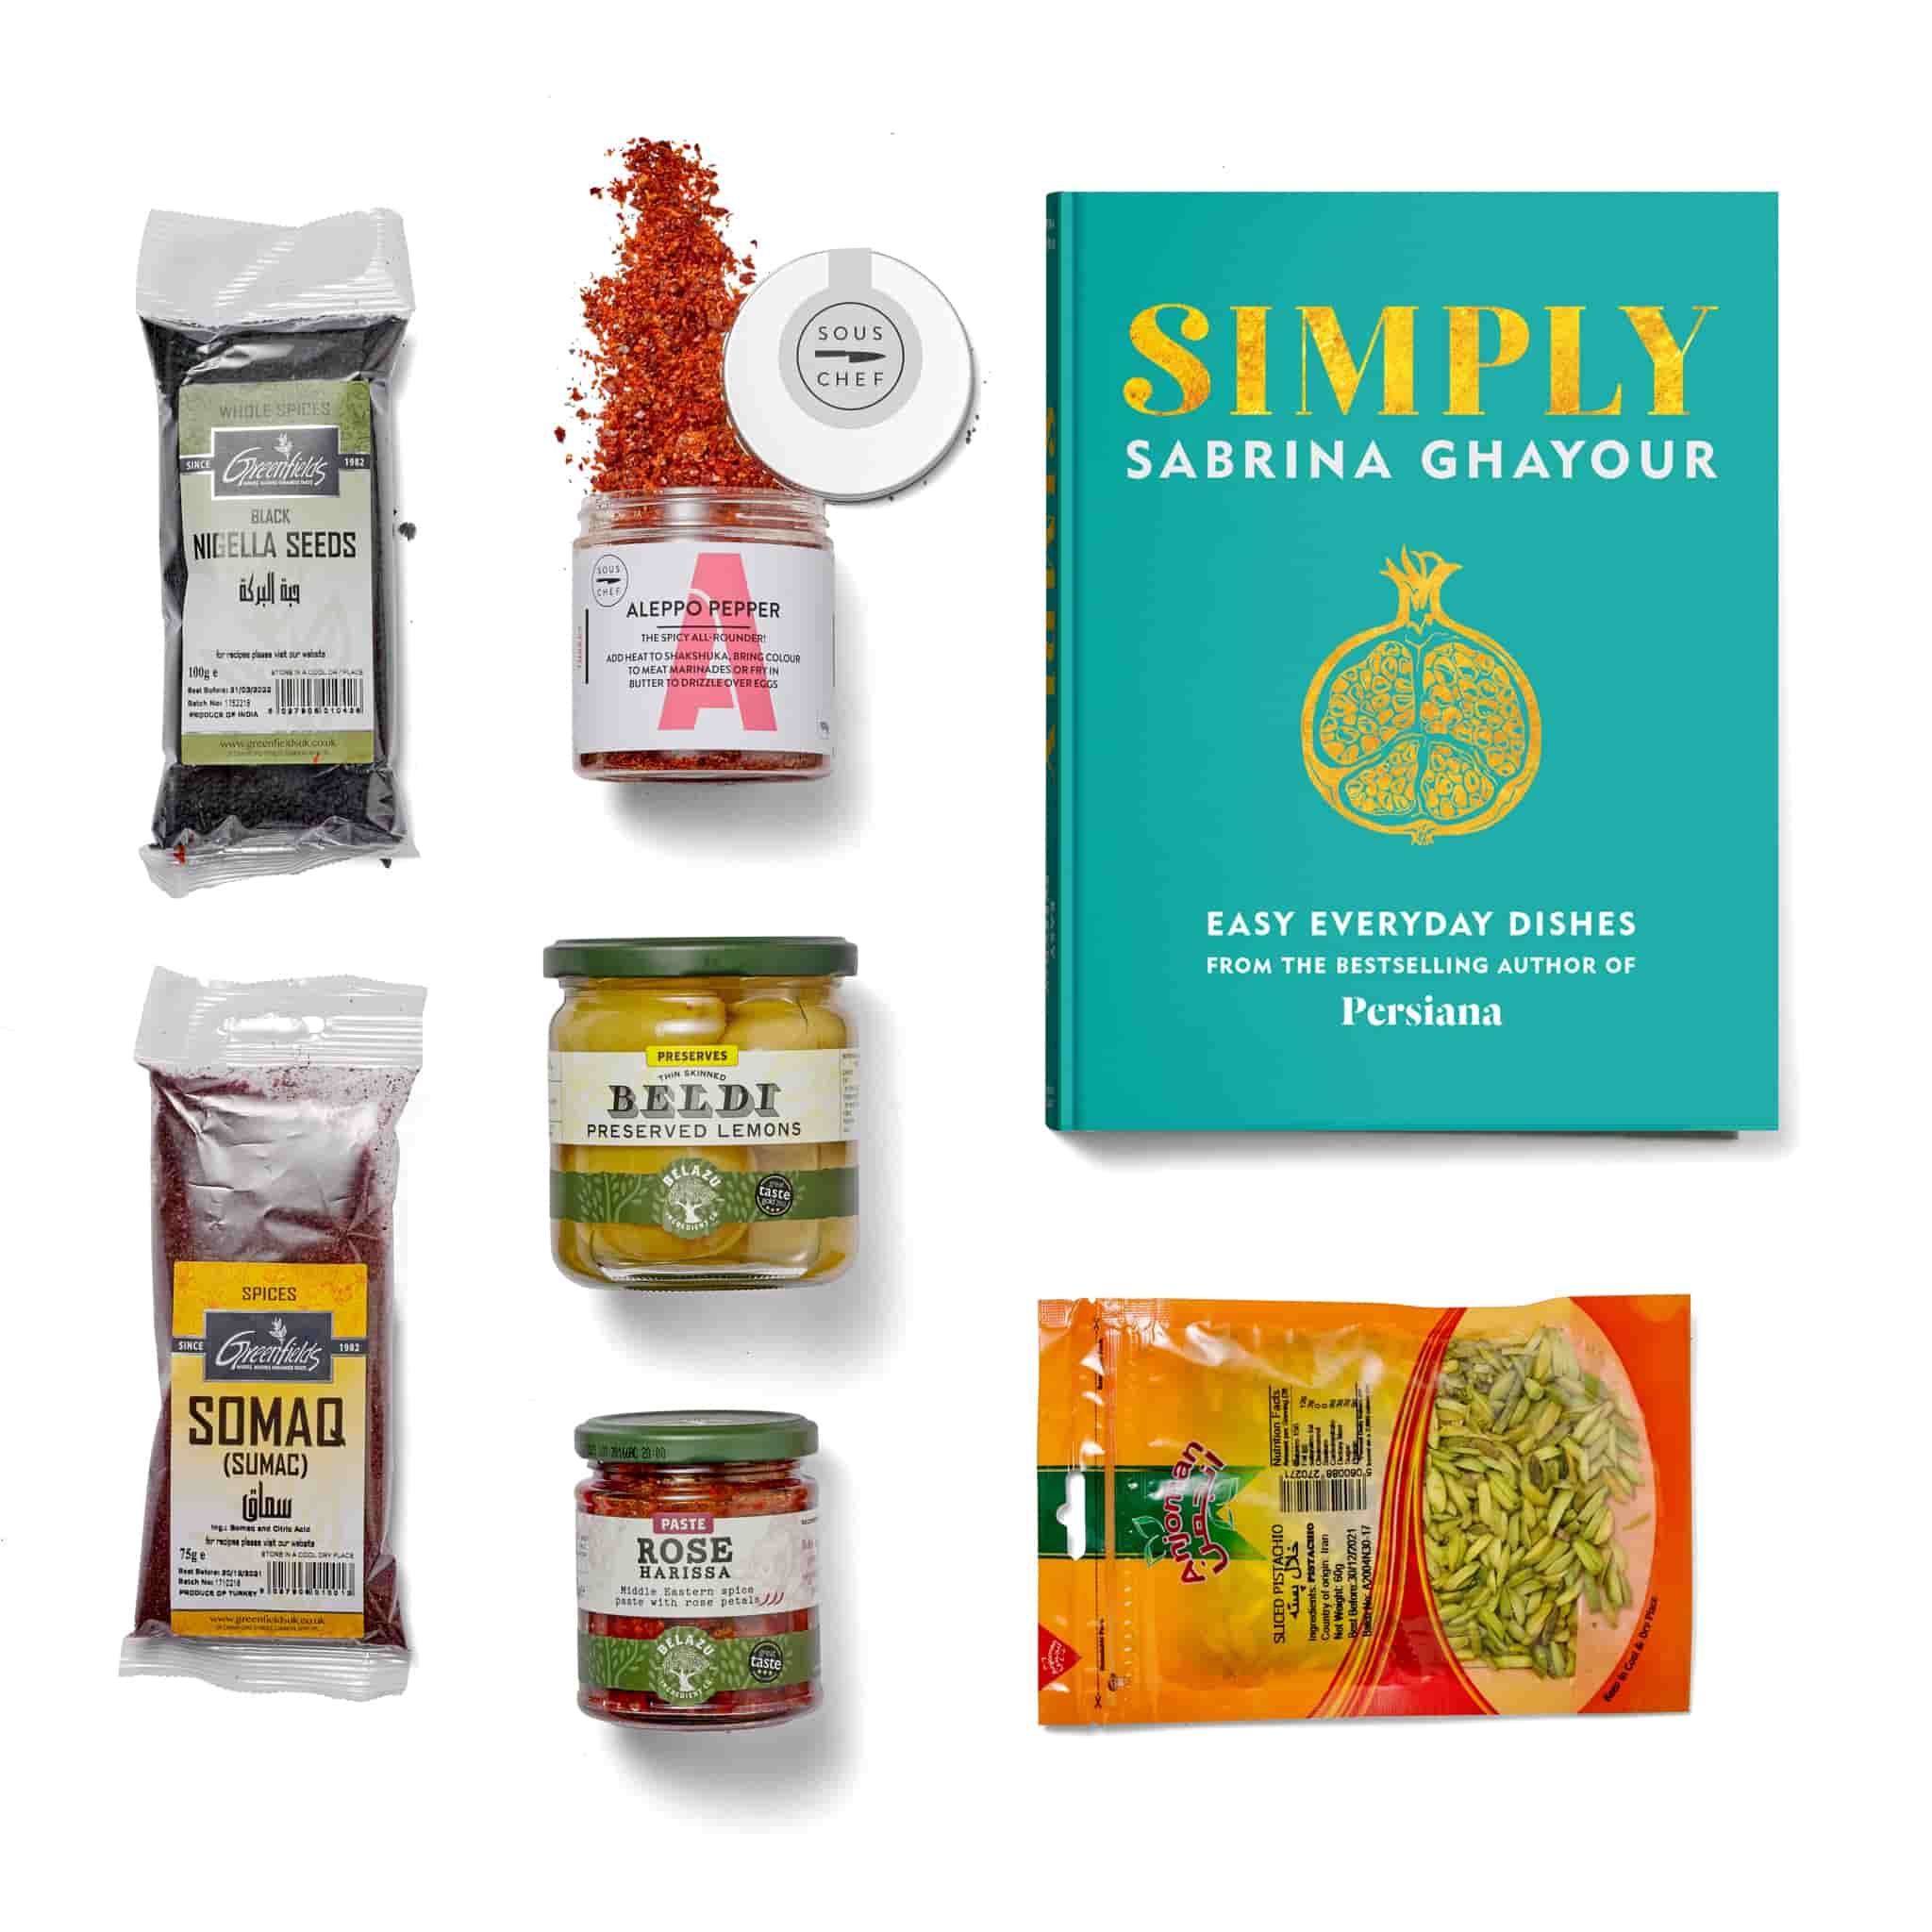 Sabrina Ghayour Simply Cookbook & Ingredients Set